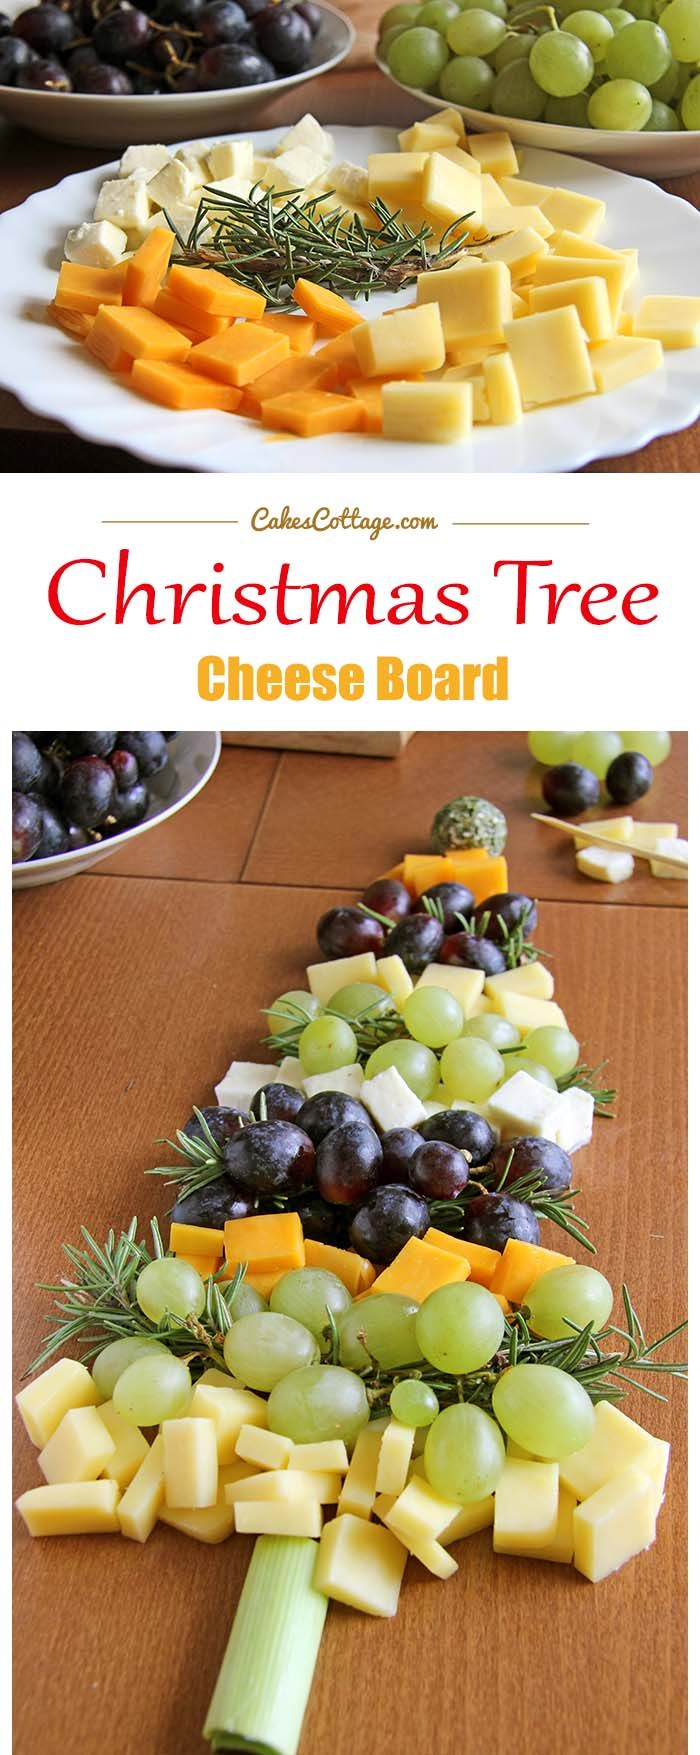 606 best merry christmas images on pinterest holiday for Different ideas for xmas dinner